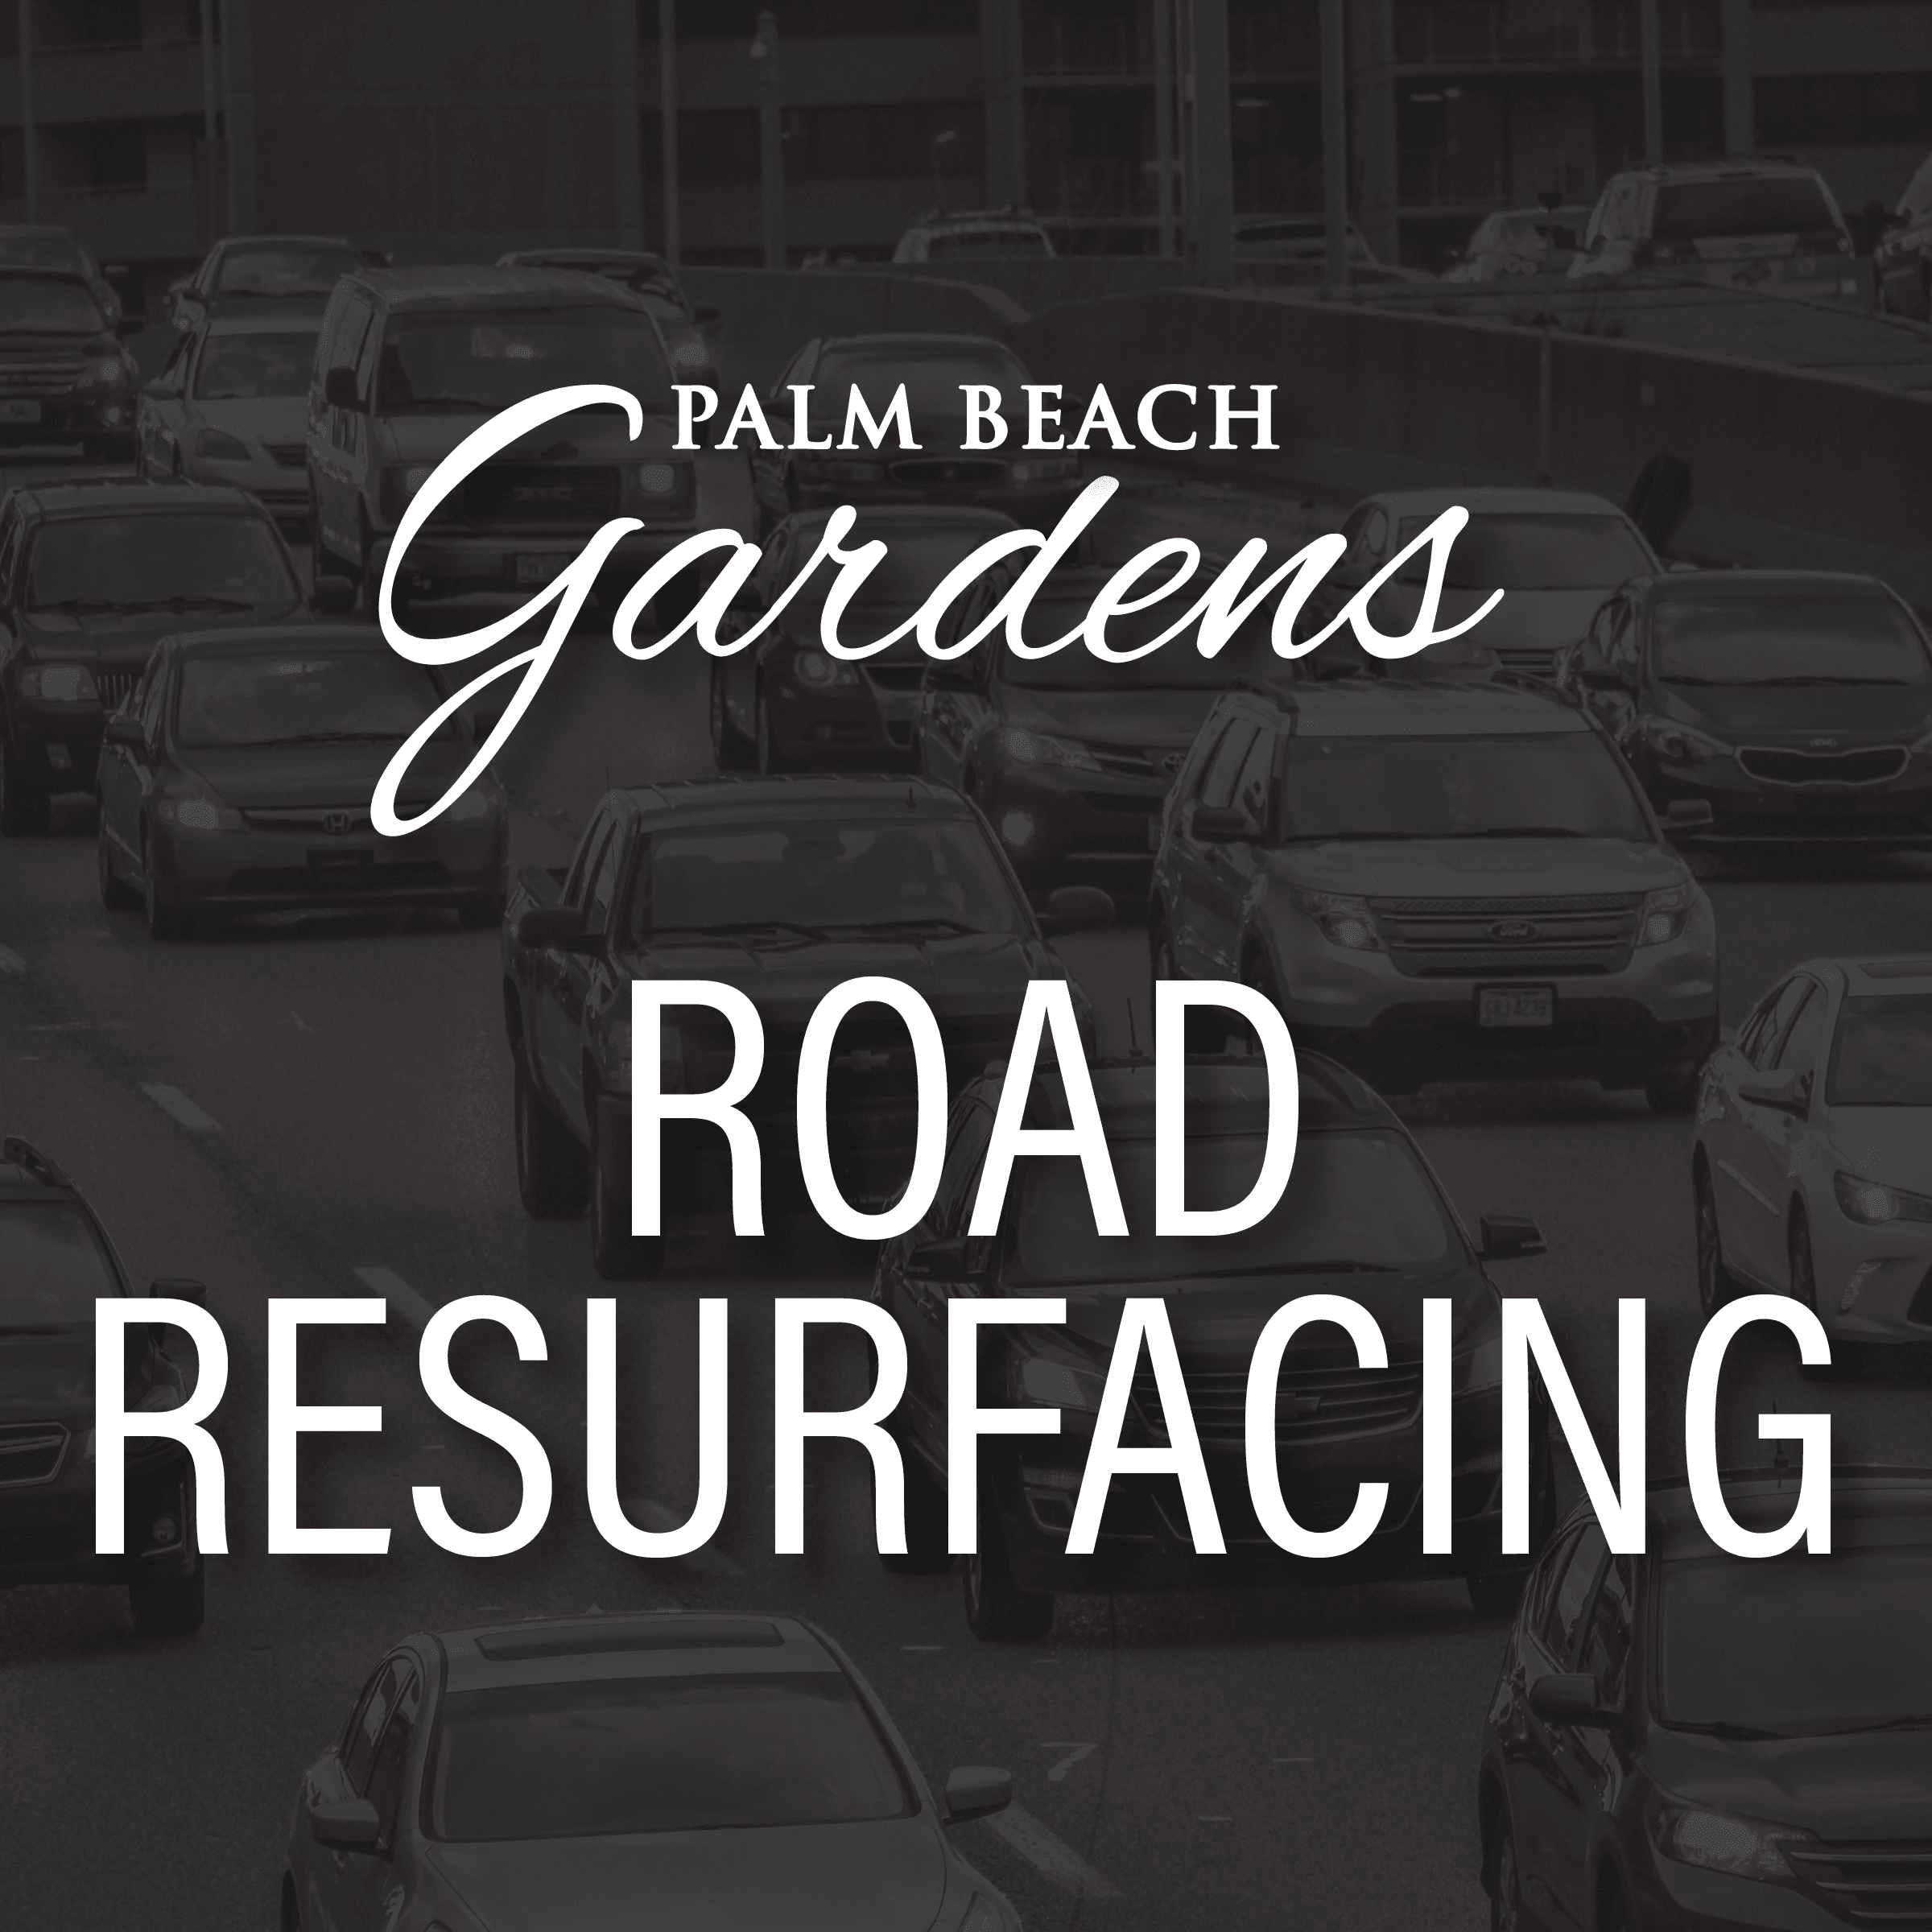 Palm Beach Gardens Road Resurfacing Advisory